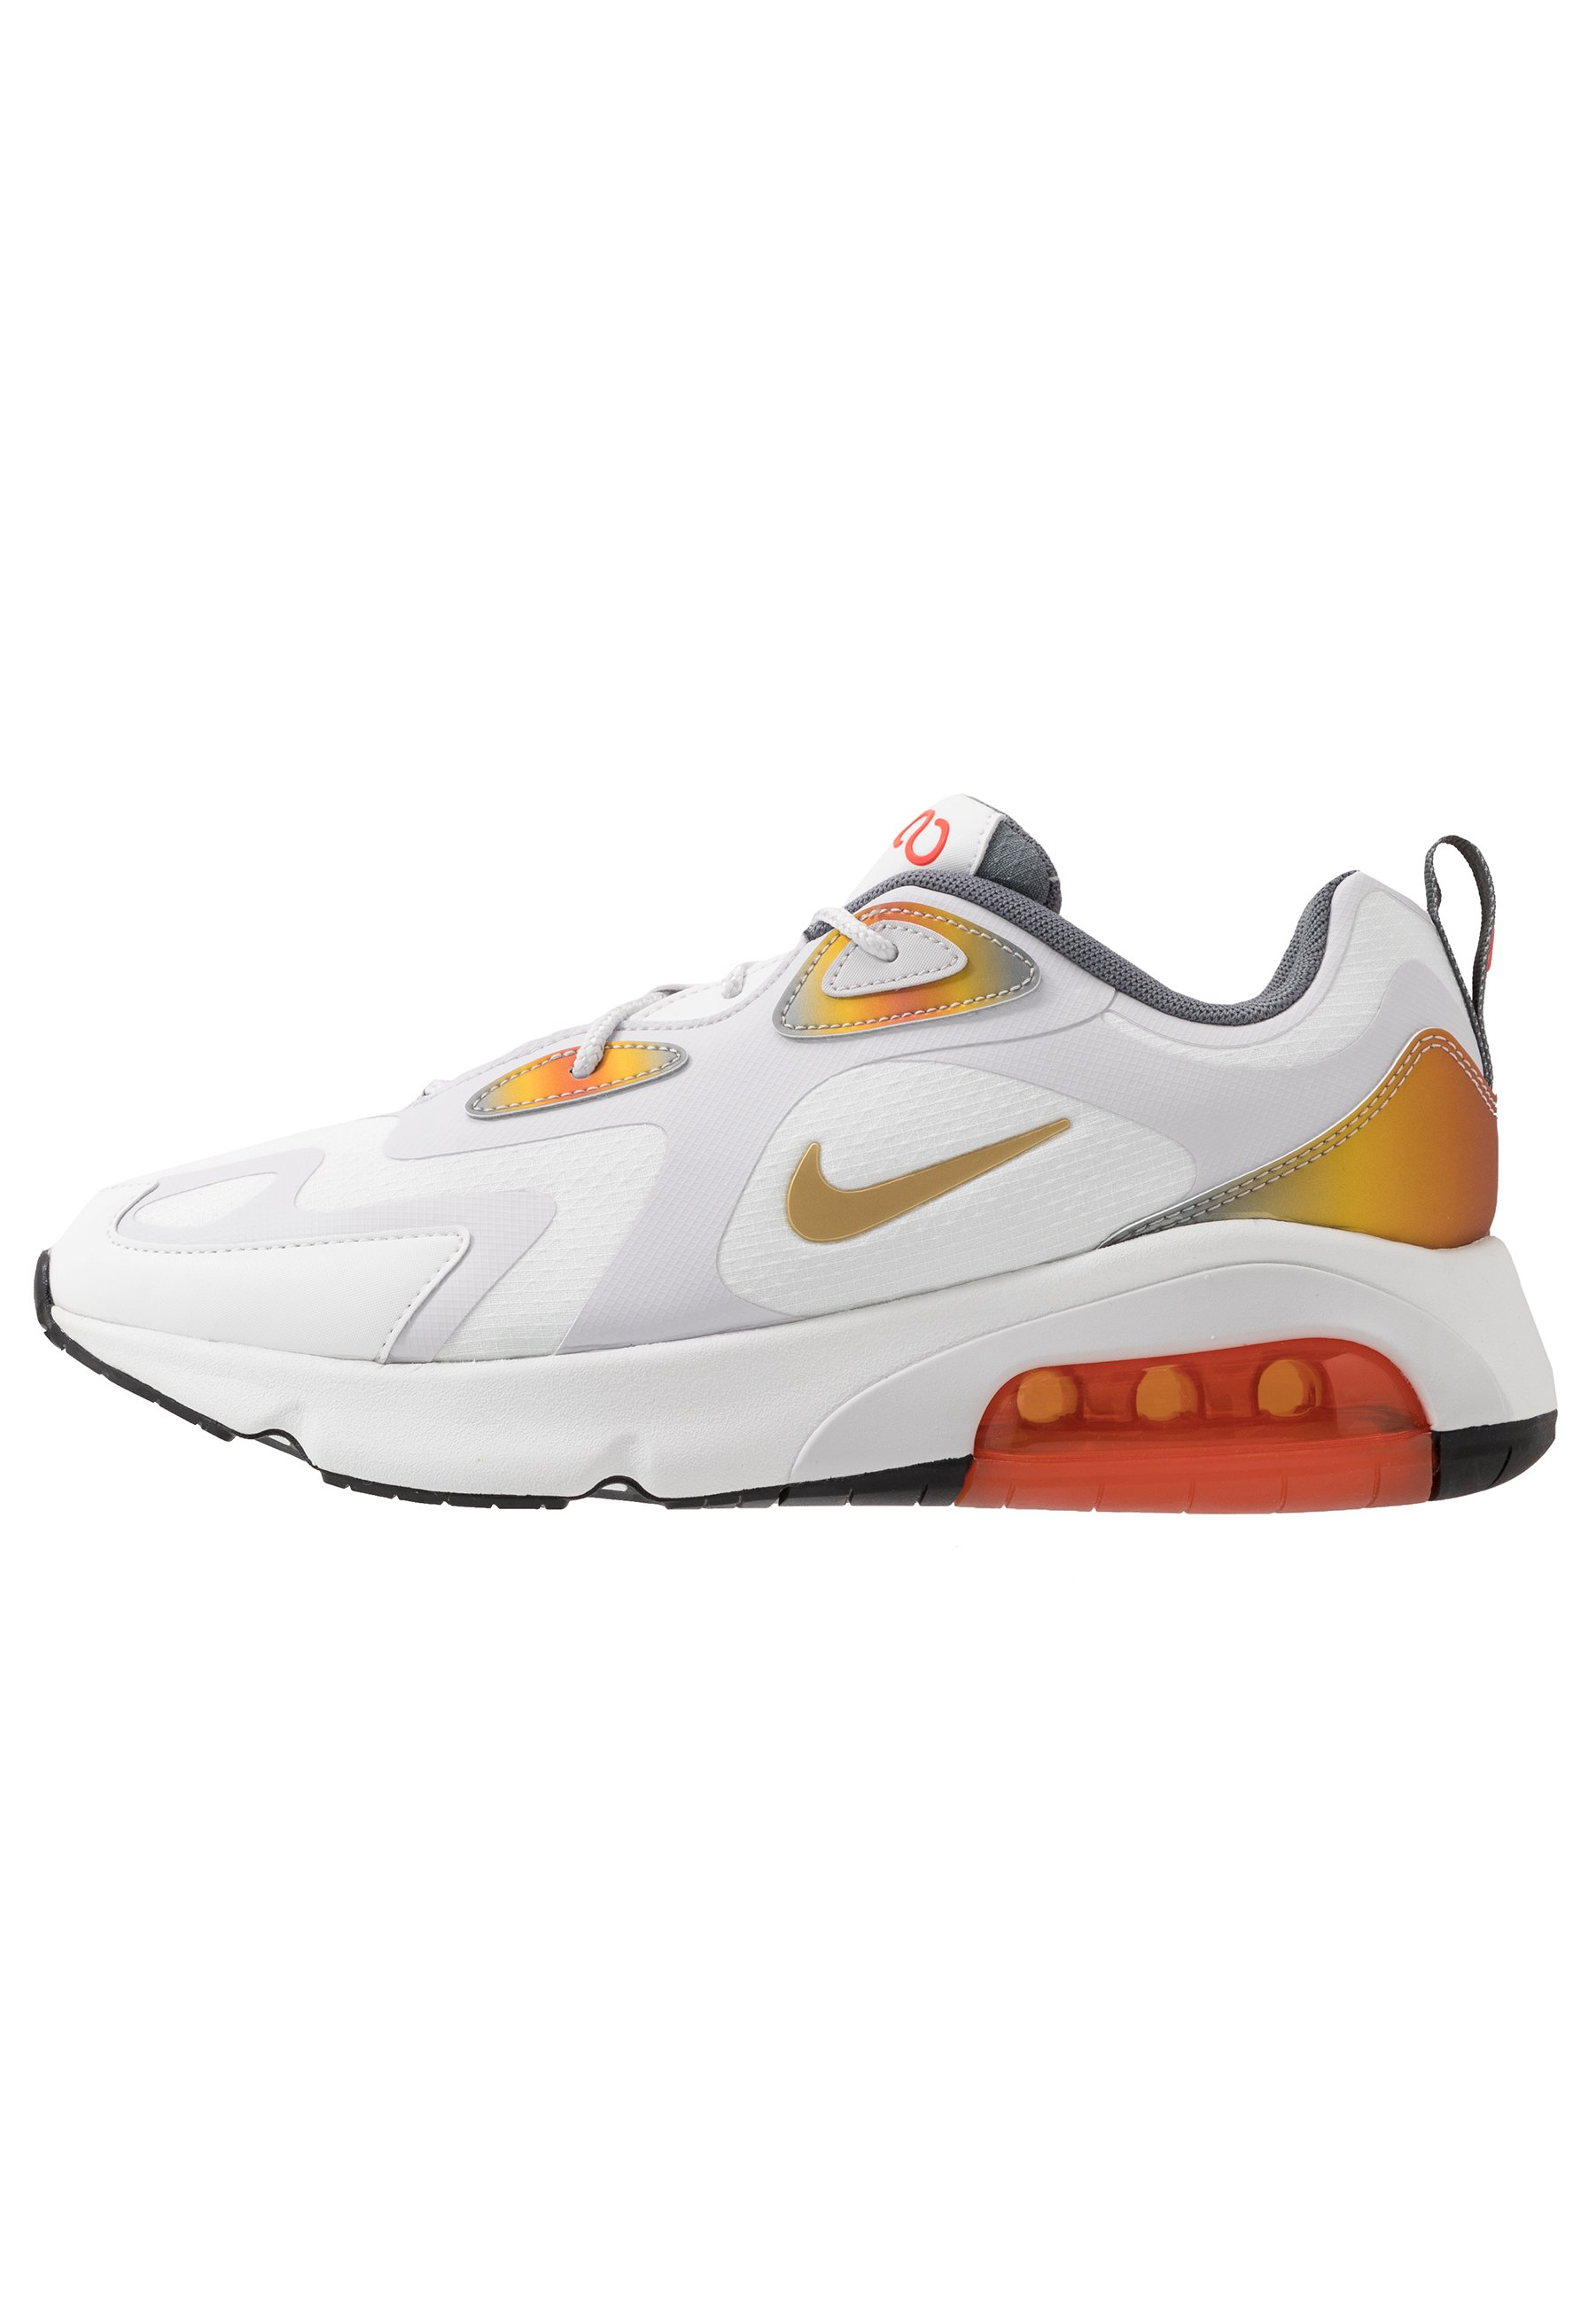 AIR MAX 200 SE Sneakers summit whitevast greymagma orangesmoke greyteam orangeblack